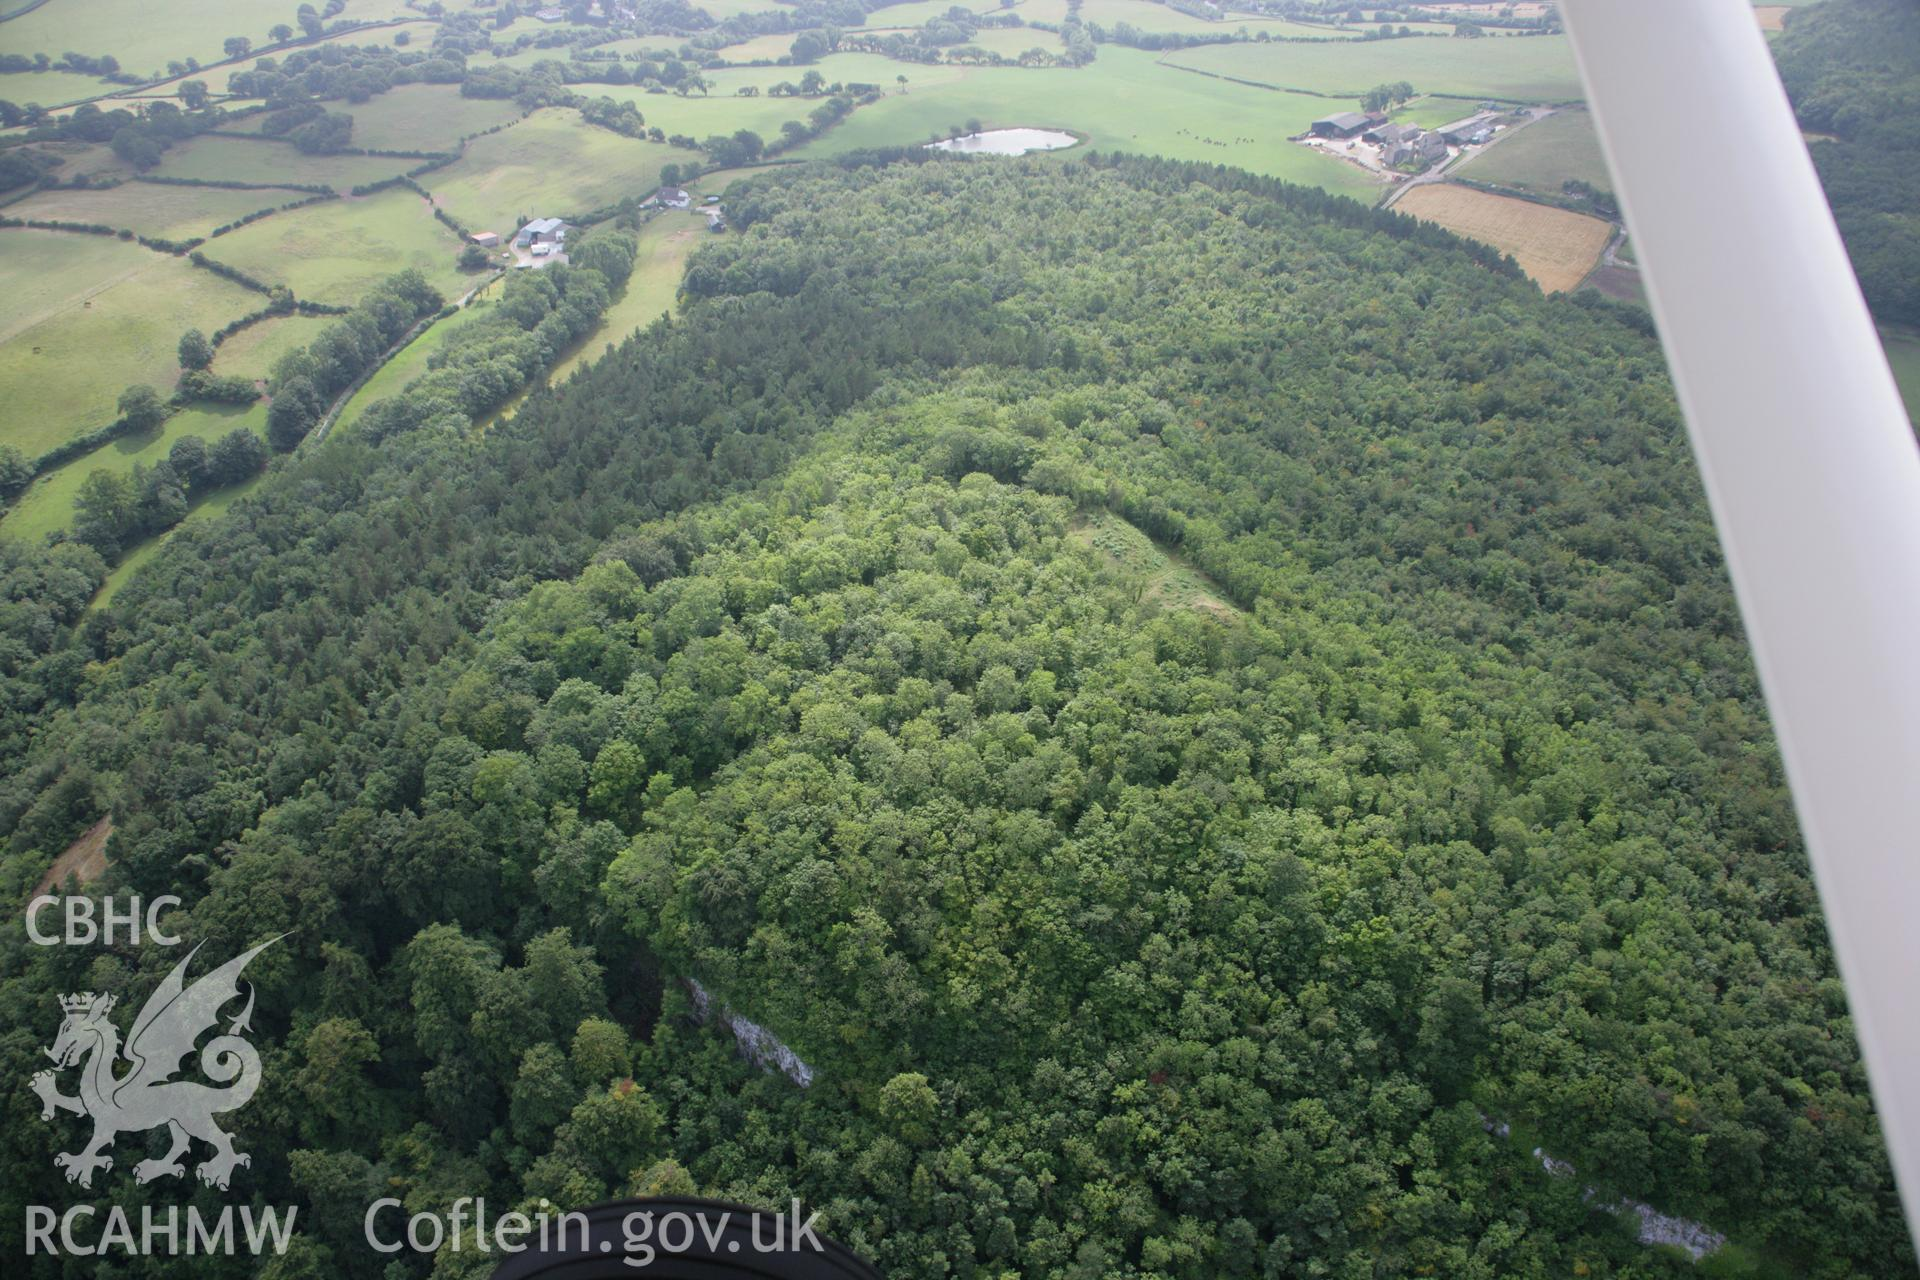 RCAHMW colour oblique aerial photograph of Castell Cawr. Taken on 14 August 2006 by Toby Driver.